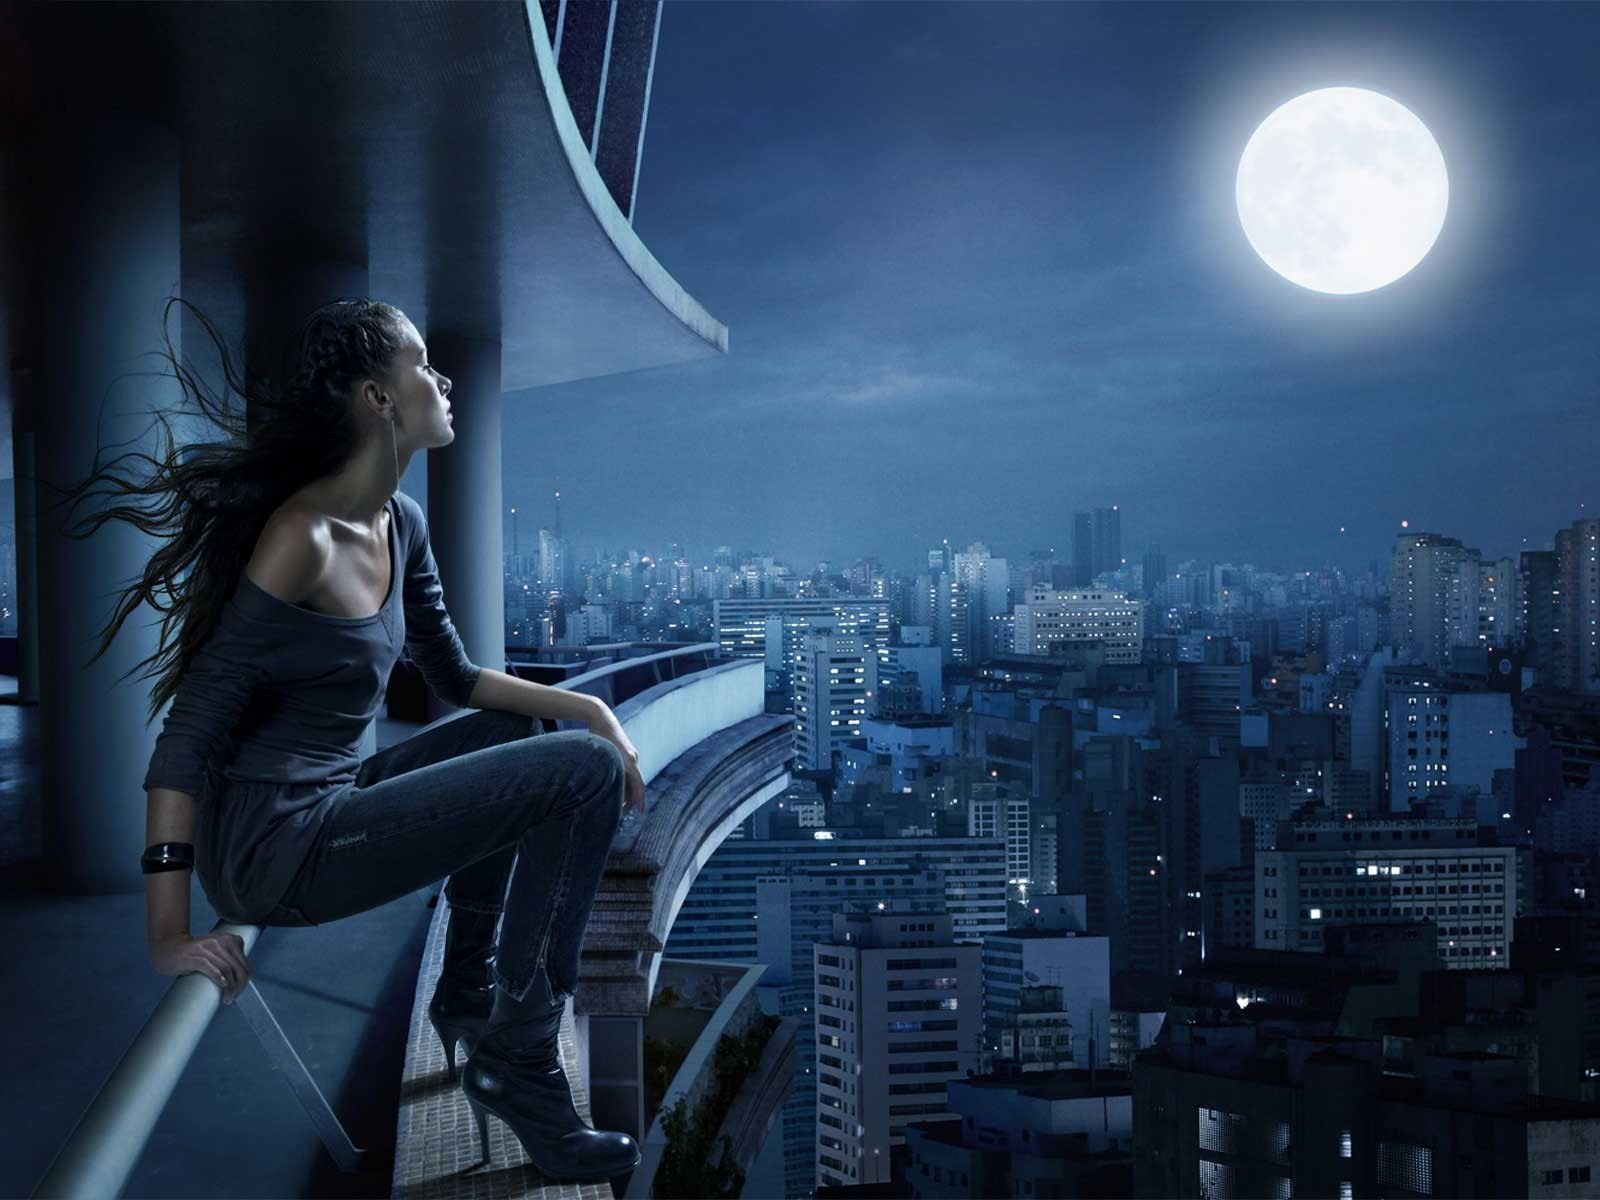 Femme - Lune - Nuit - Wallpapers - Free